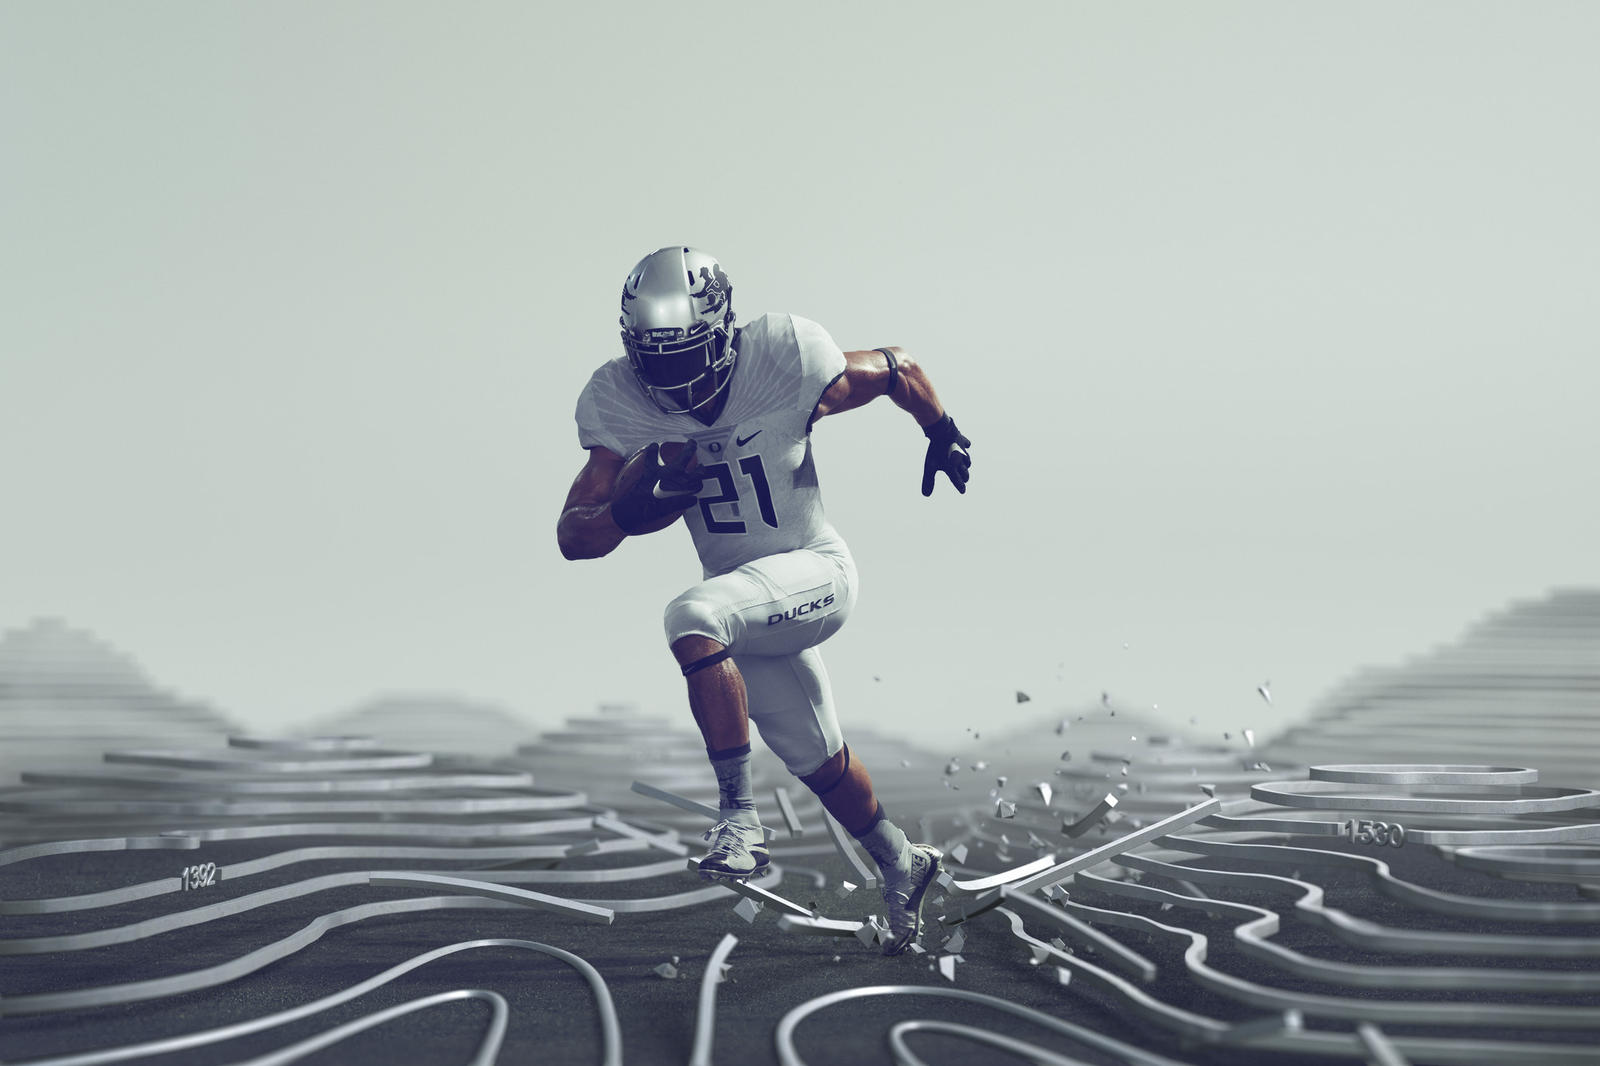 classic fit aed57 bd6e1 10 Things To Know About the New Oregon Ducks Uniform - Nike News